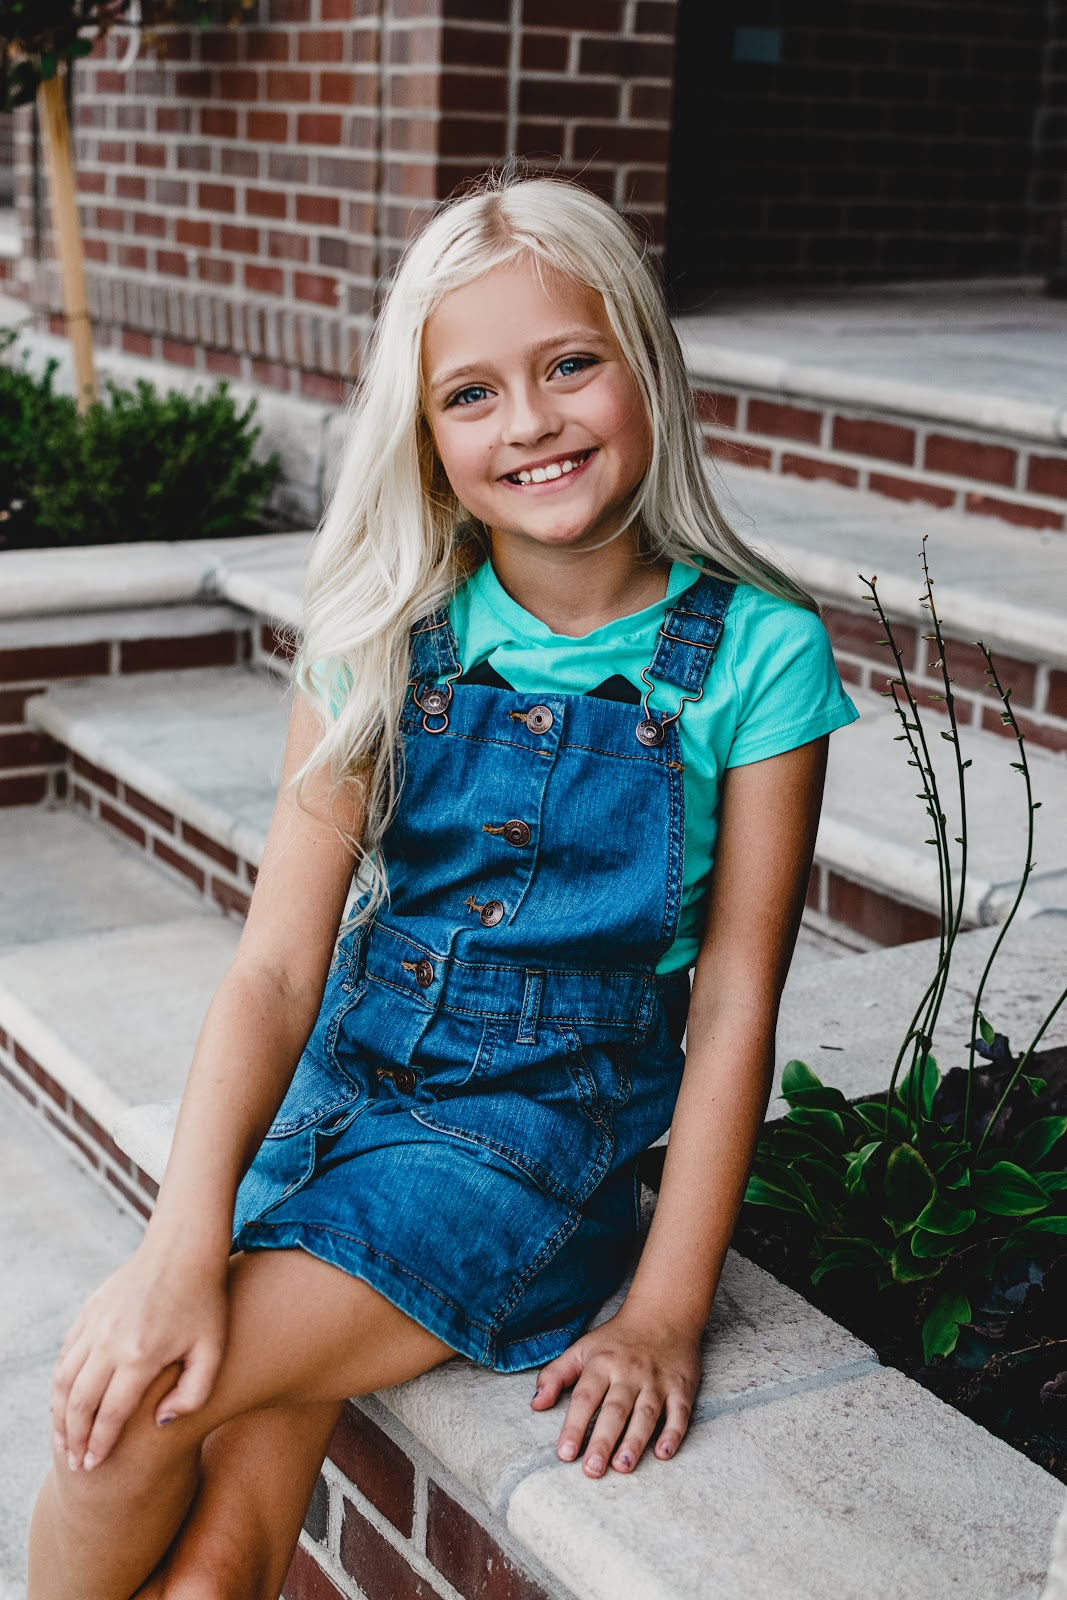 OshKosh B'gosh, Back to School, shopping tips, kids fashion, OshKosh, kids style